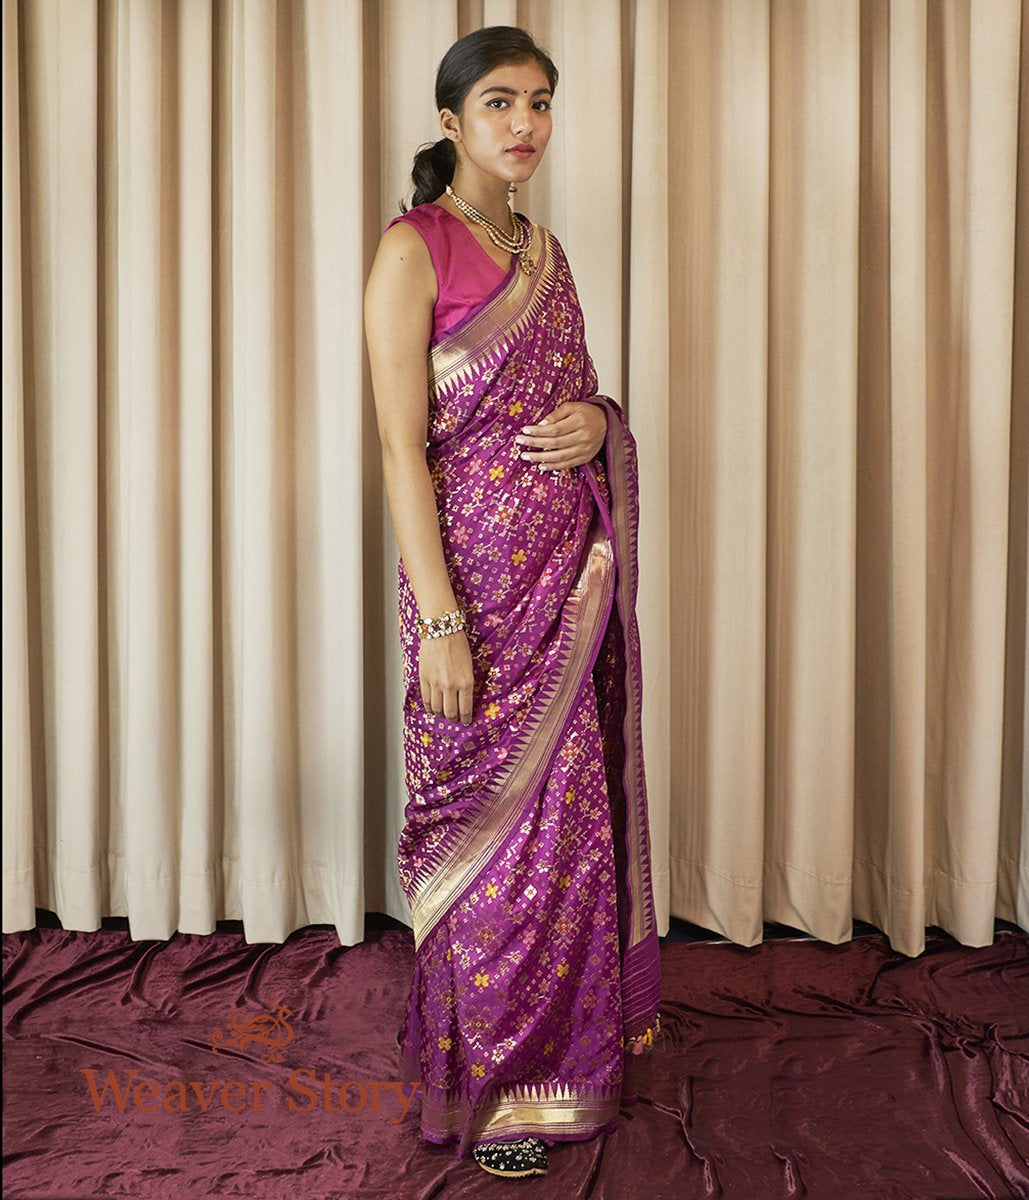 Handwoven Purple Meenakari Banarasi Patola Saree with Temple Border